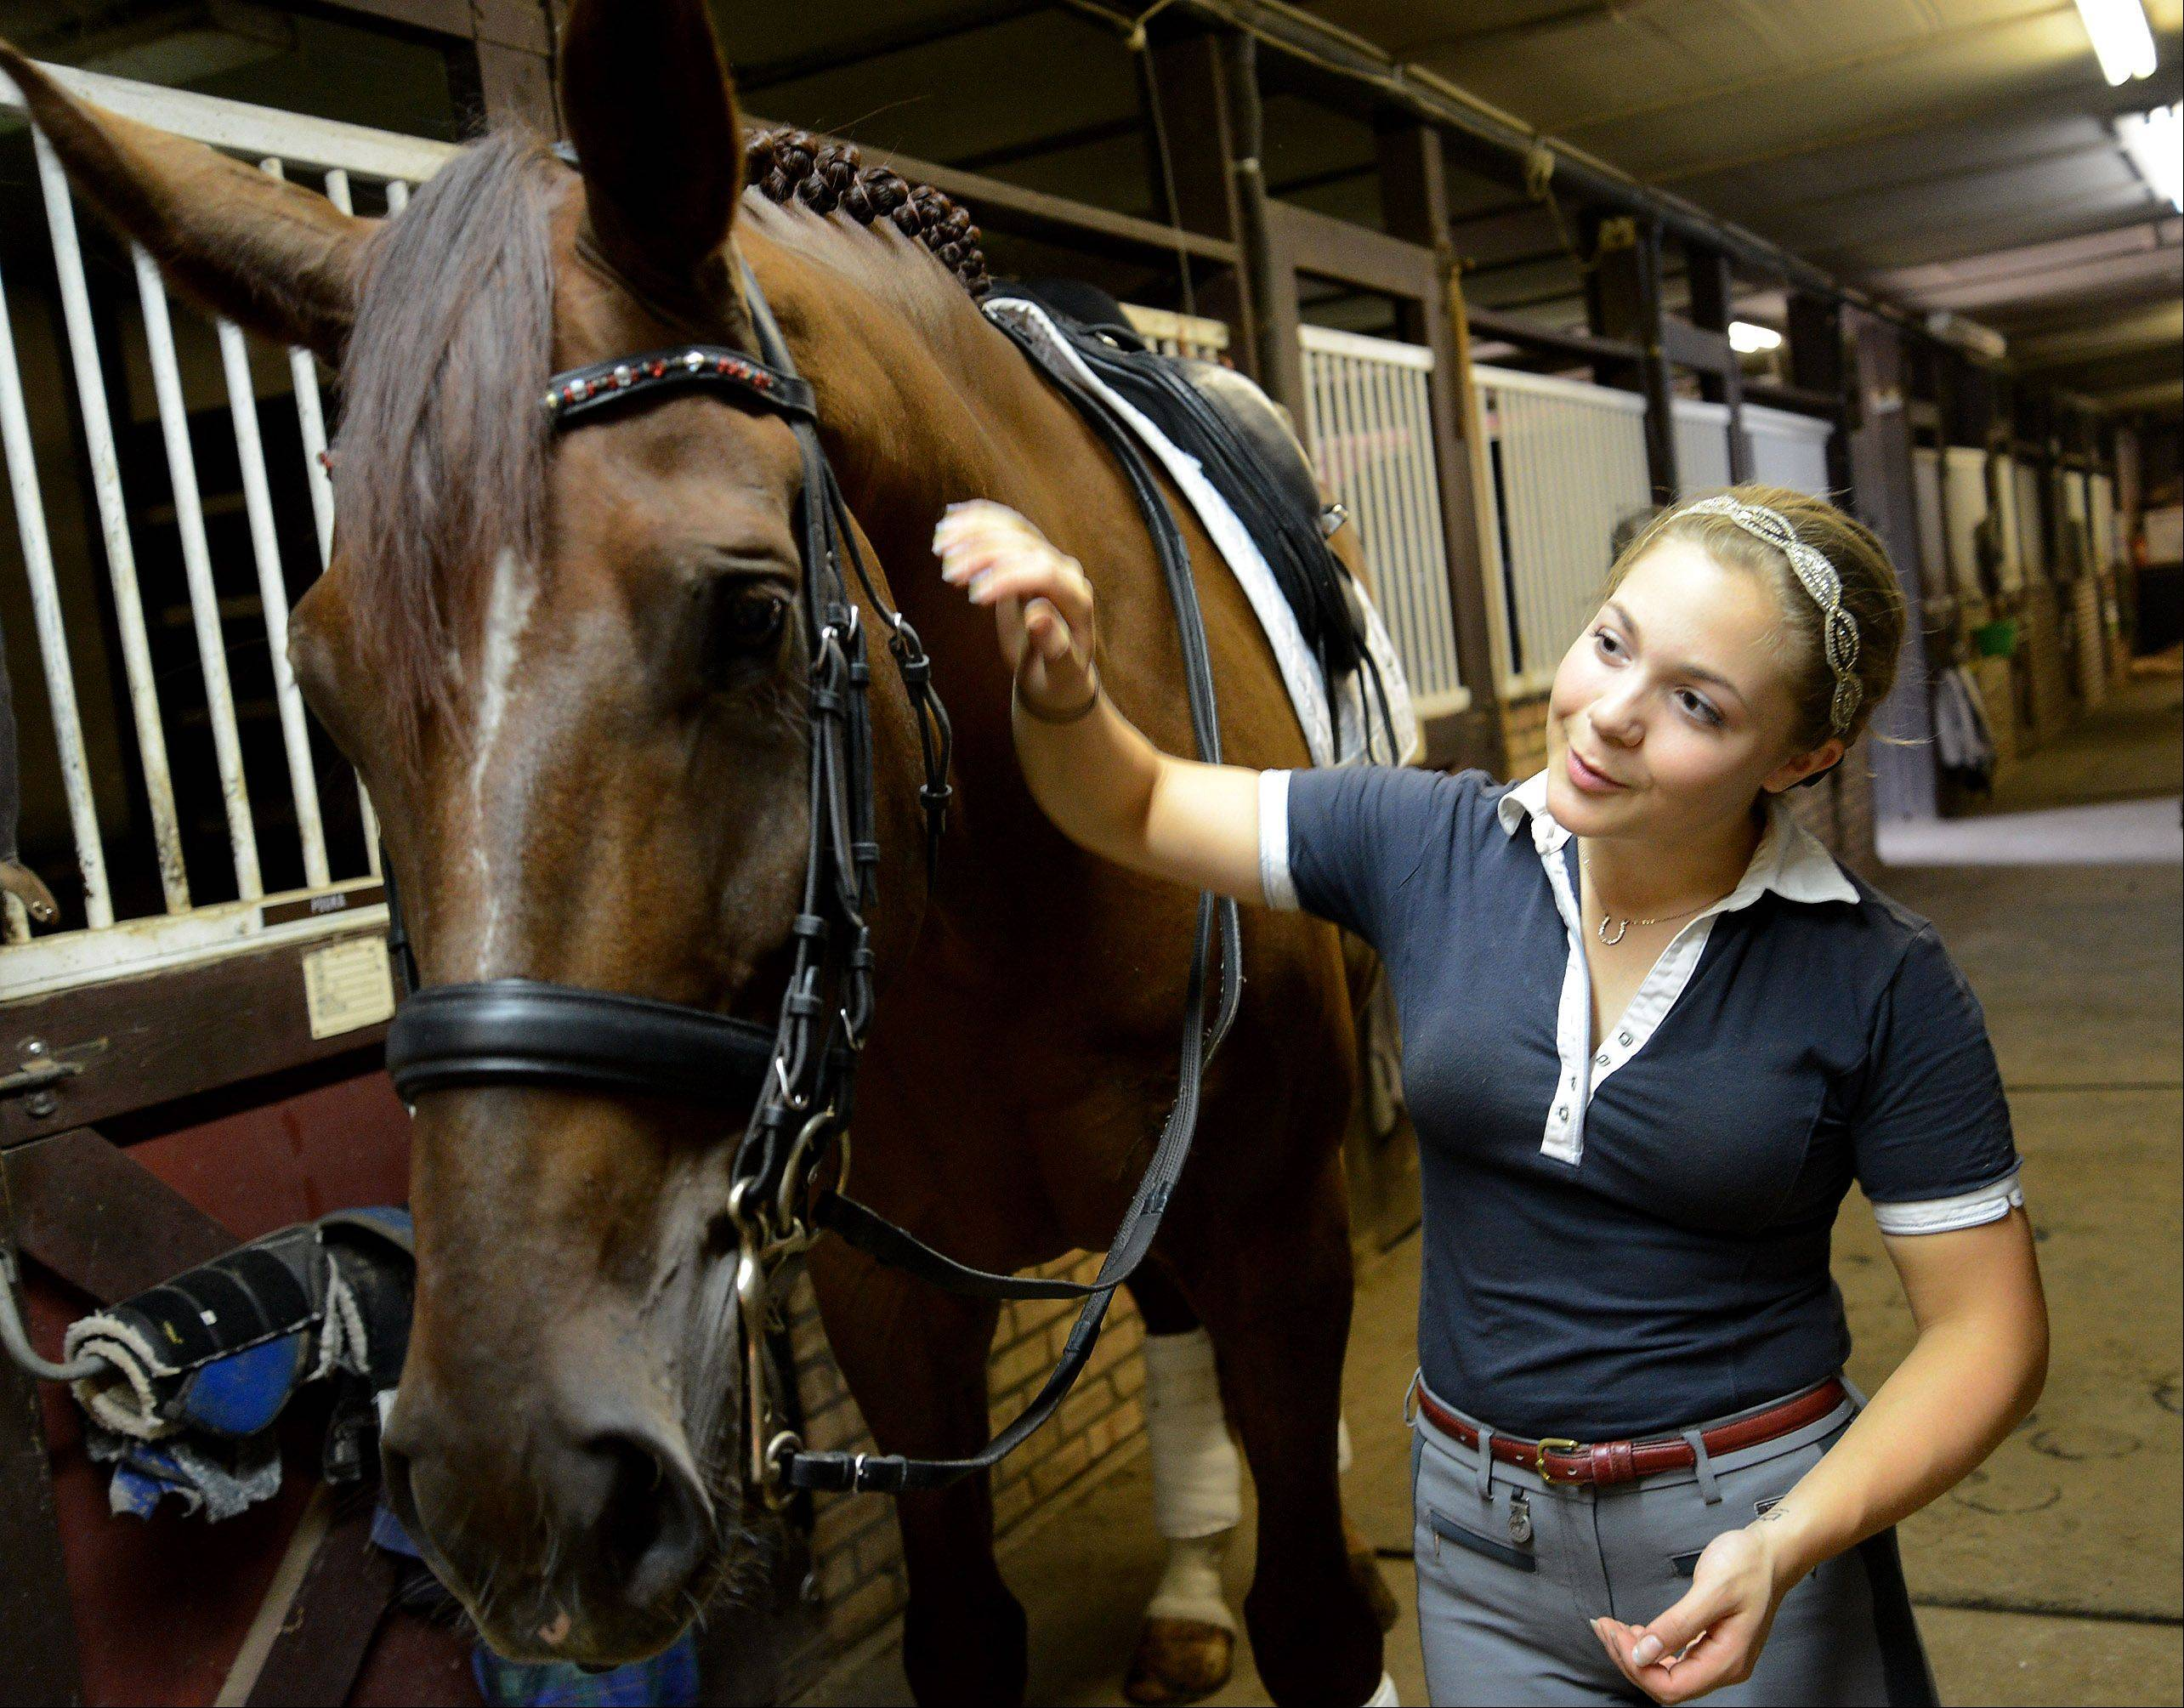 Barrington High School senior Rosie Julian-Simoes and horse Proteus prep for a training session at the Flying Dutchman Farm in Barrington Hills. Rosie is one of the country's top-ranked dressage competitors in her division and hopes to eventually compete internationally.